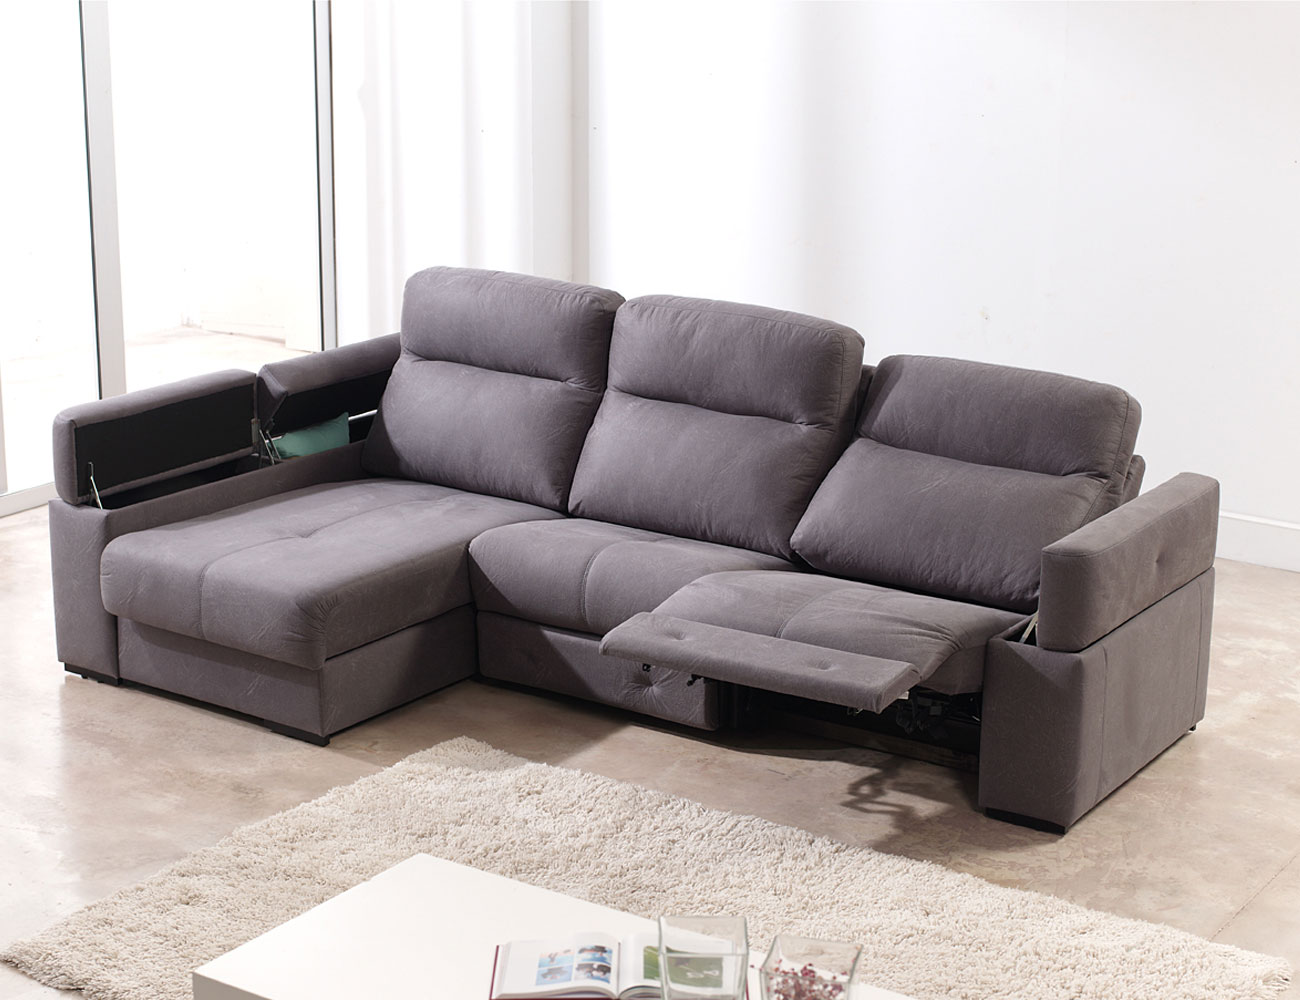 Sofa chaiselongue relax motor electrico 3 arcon 19